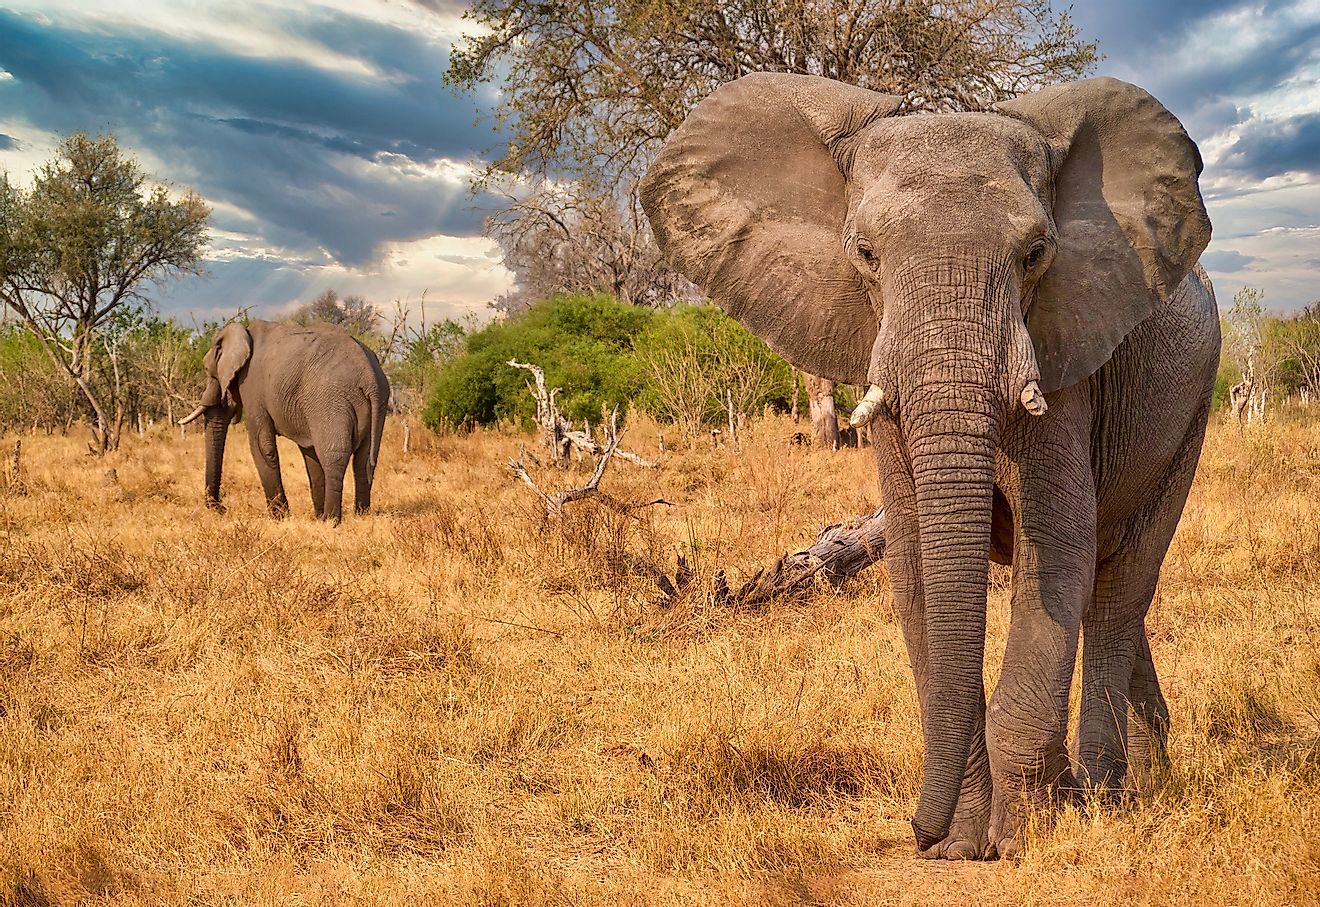 The African elephant is found in the African continent. Its ears are said to appear like the map of Africa.